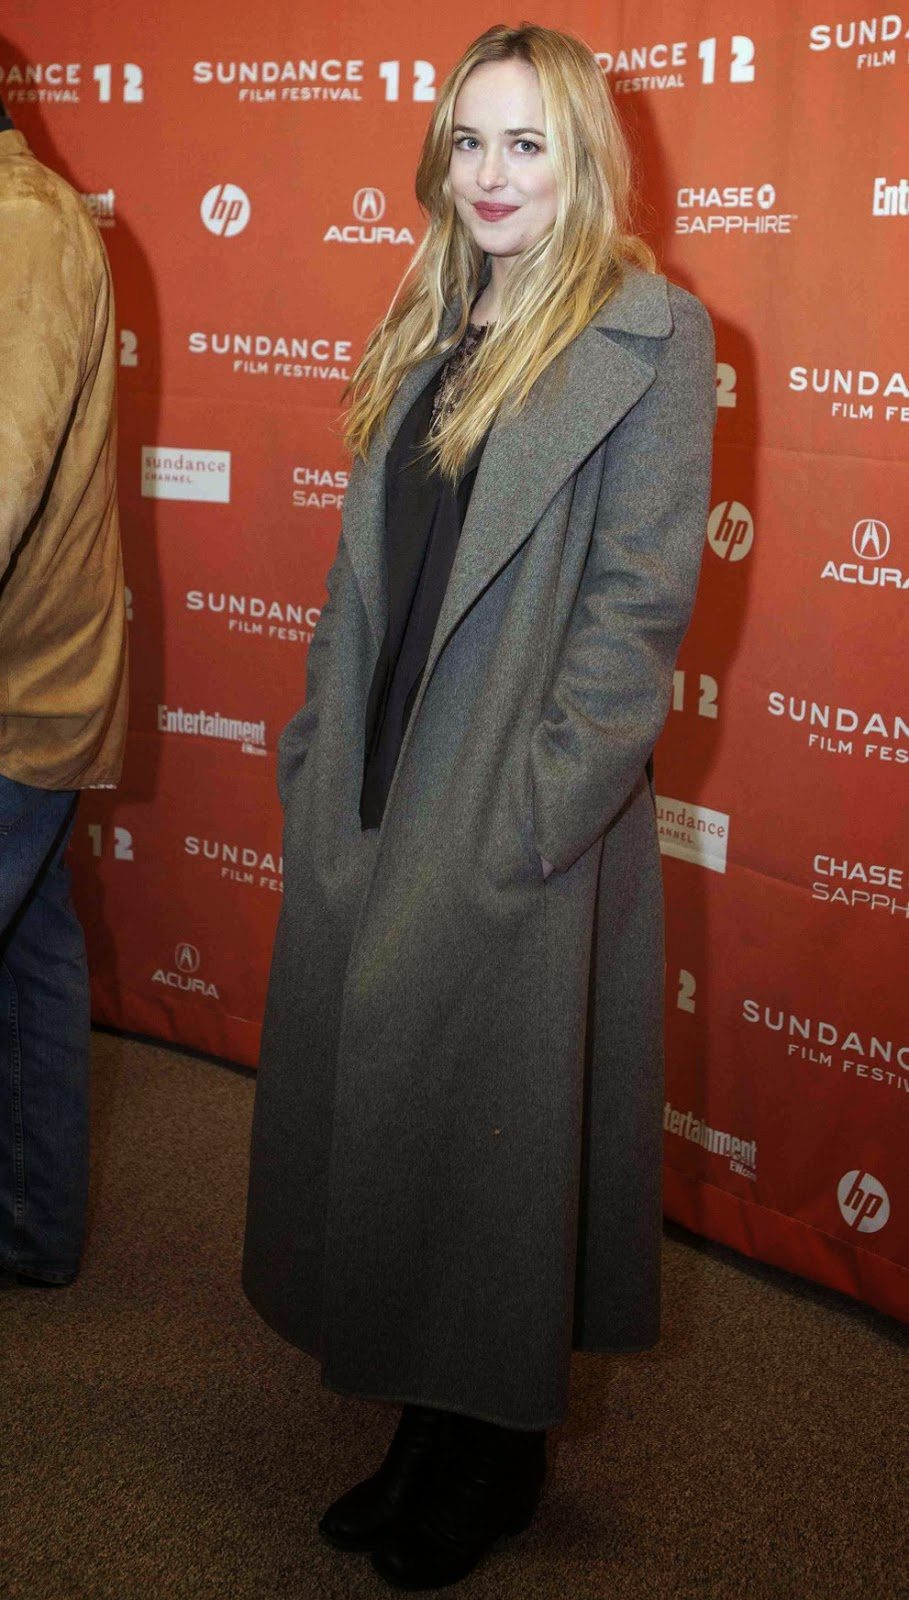 Fotos HQ Ineditas! Dakota Johnson en el Sundance Film Festival- 24 Enero 2012